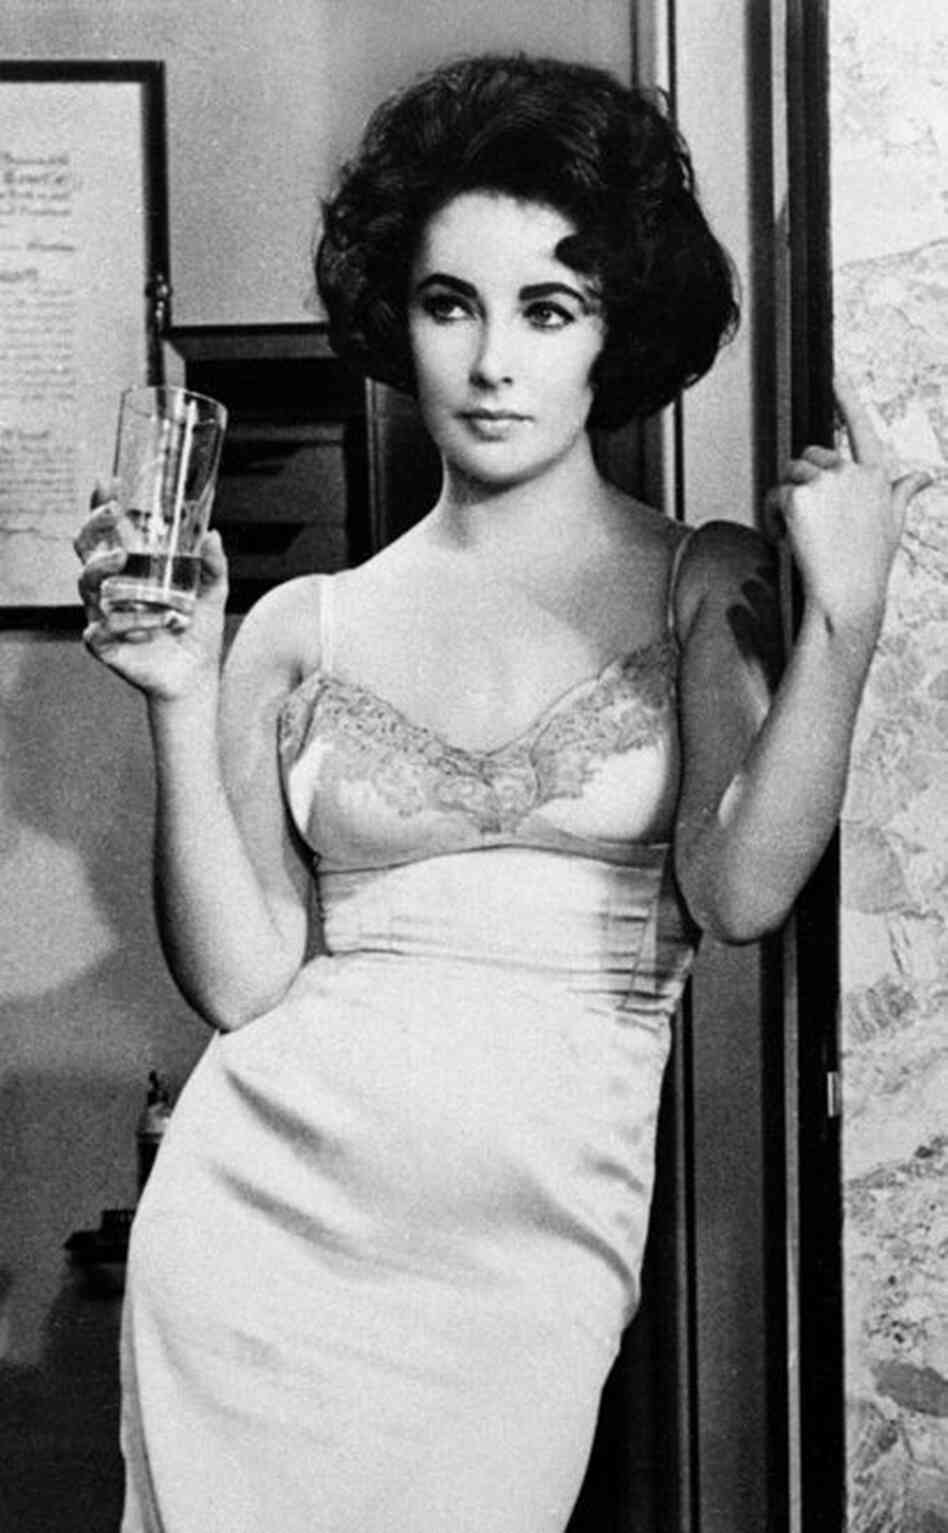 Taylor won an Academy Award in 1960 for her performance in Butterfield 8 as a promiscuous model who falls in love with a married man.